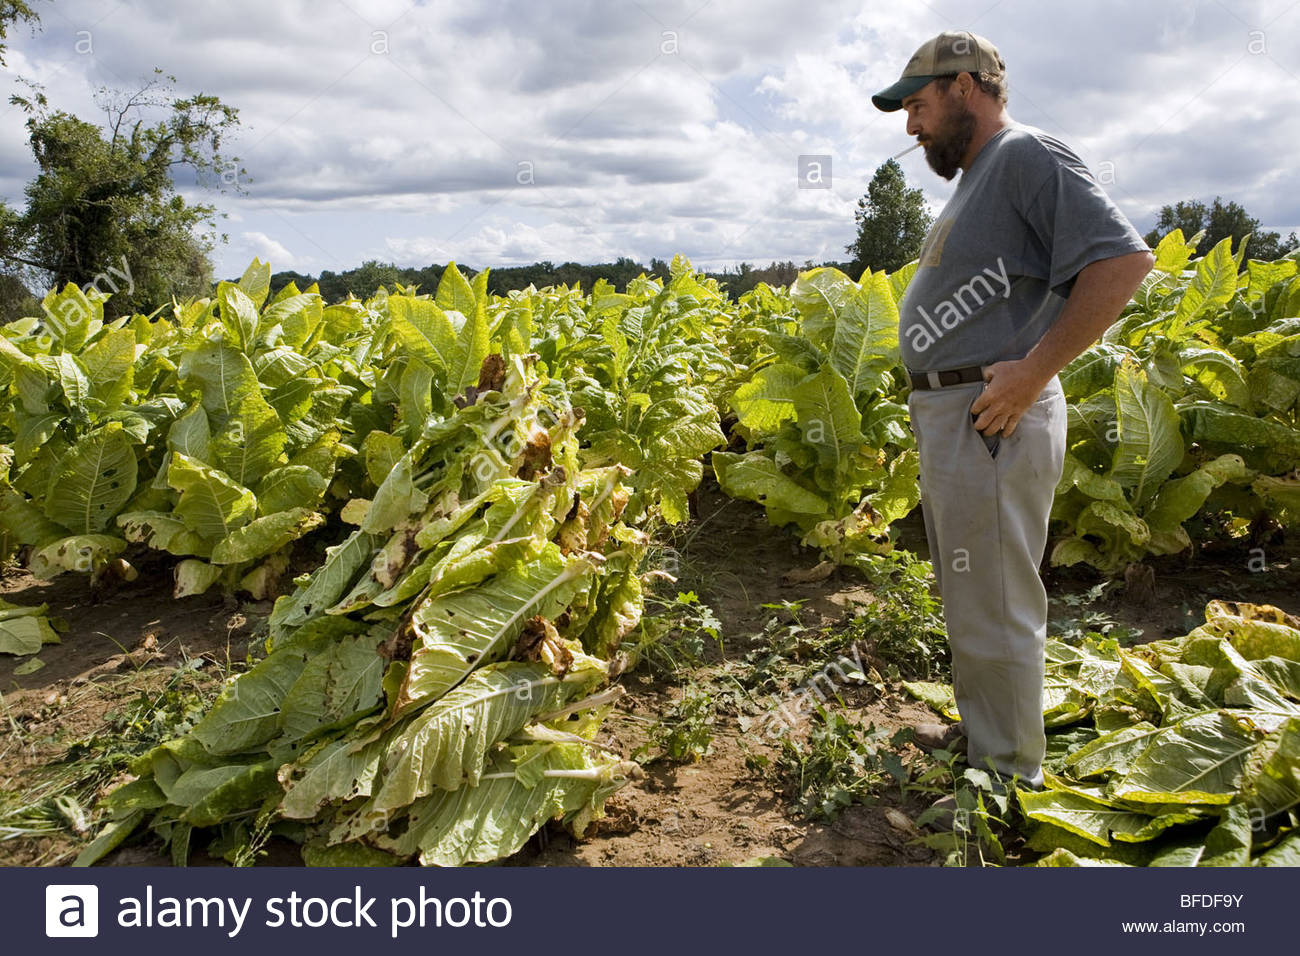 A portrait of a tobacco farmer looking at his crop. - Stock Image